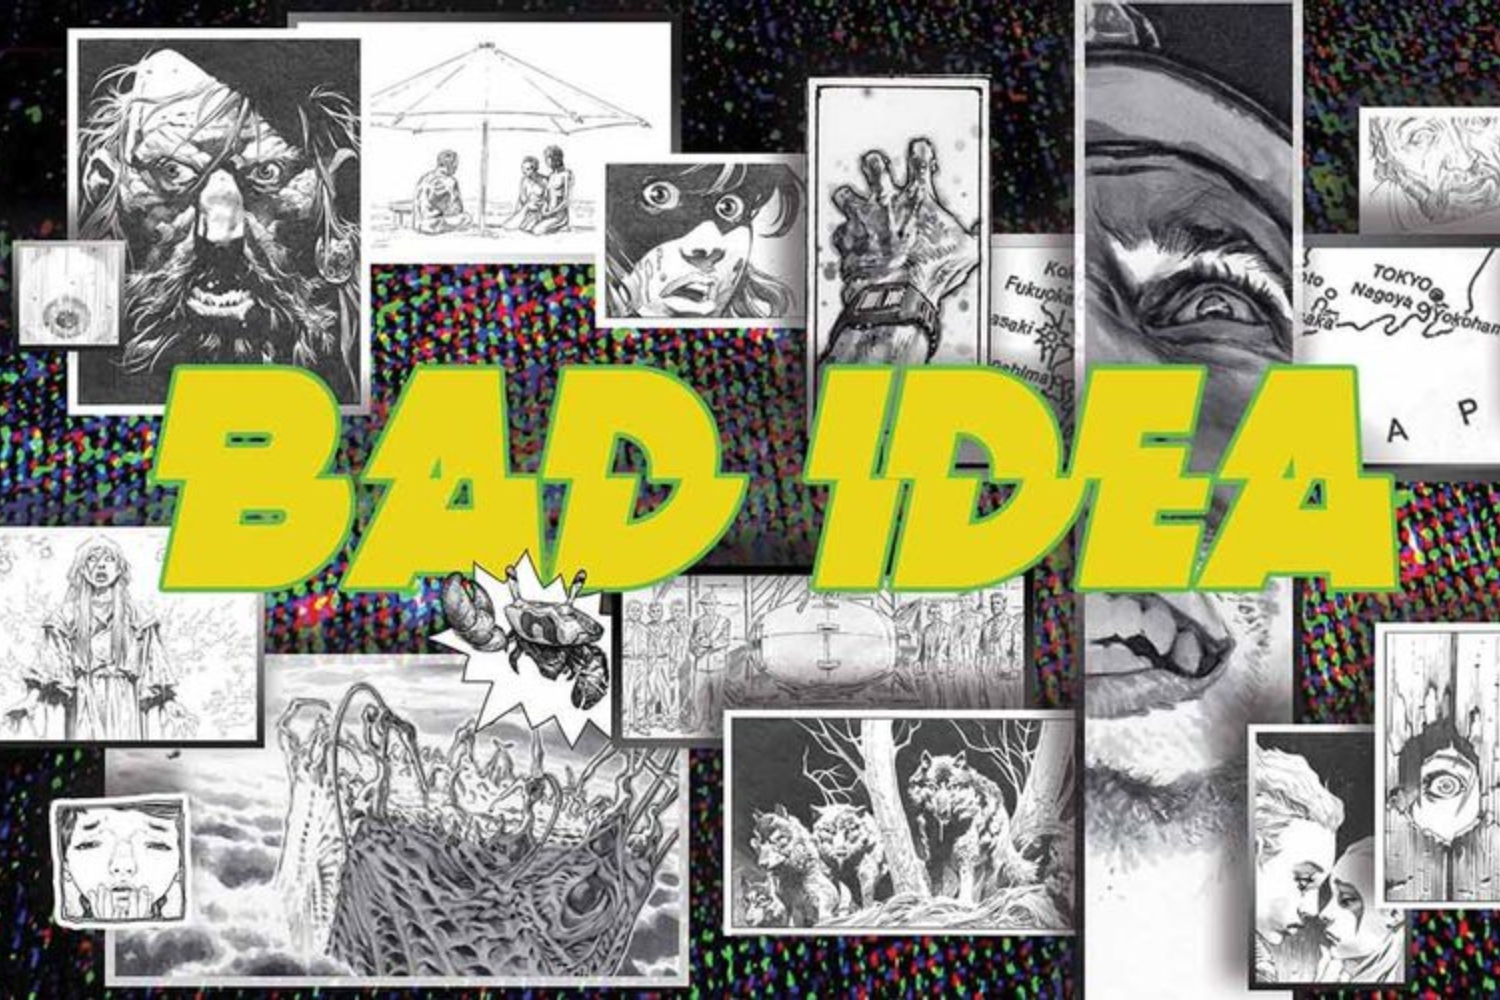 Bad Idea has savvy plans for comics publishing